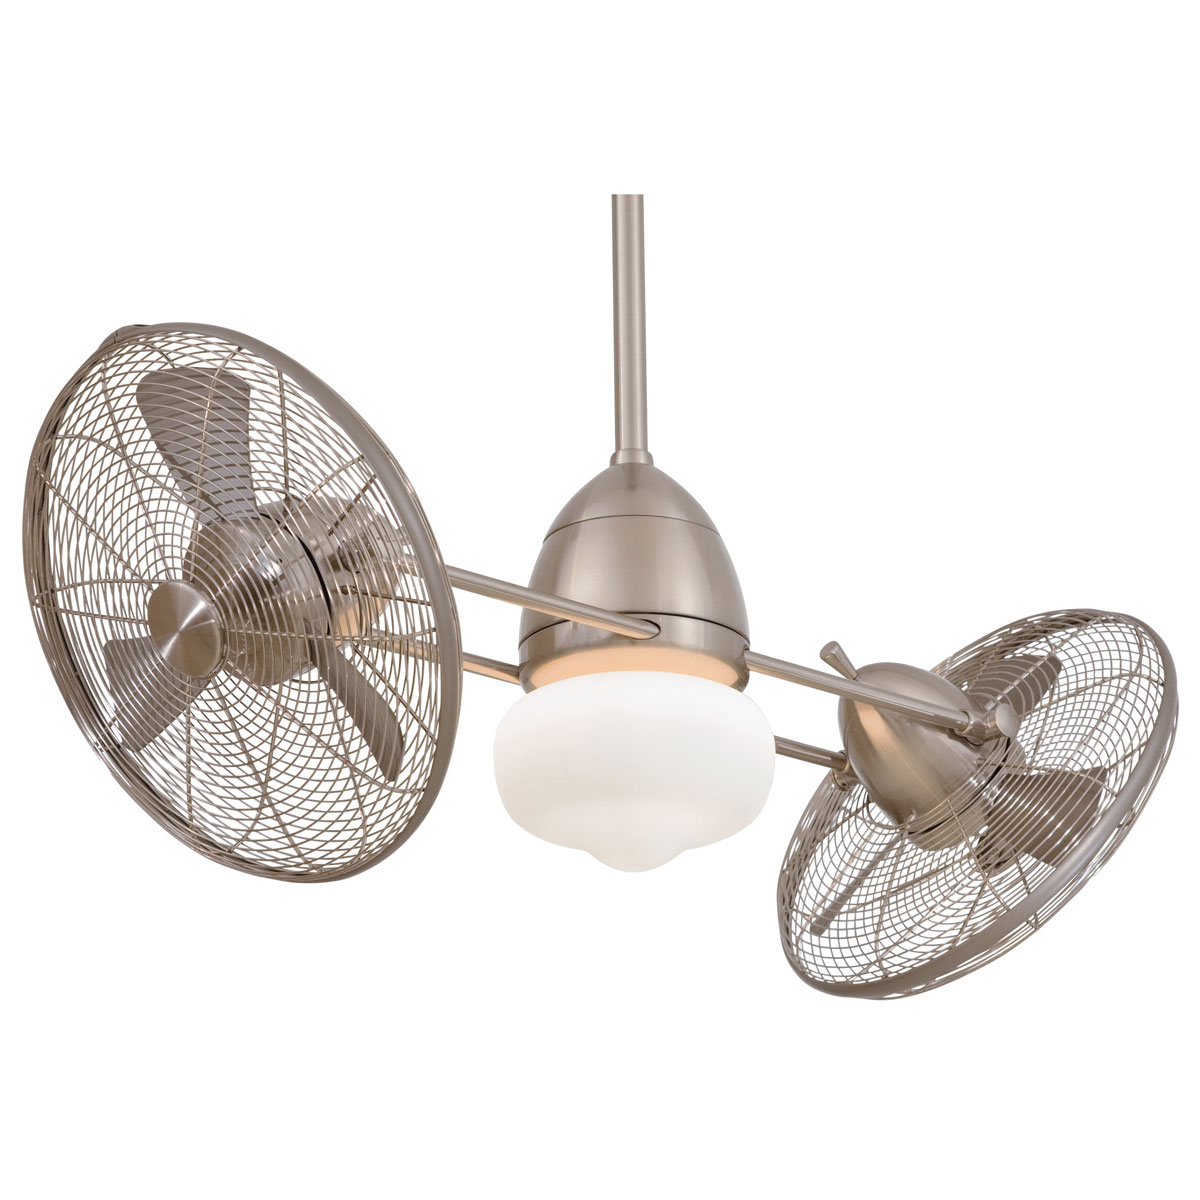 mount inch ceiling aire zone minka flush review fan concept ii fans bn